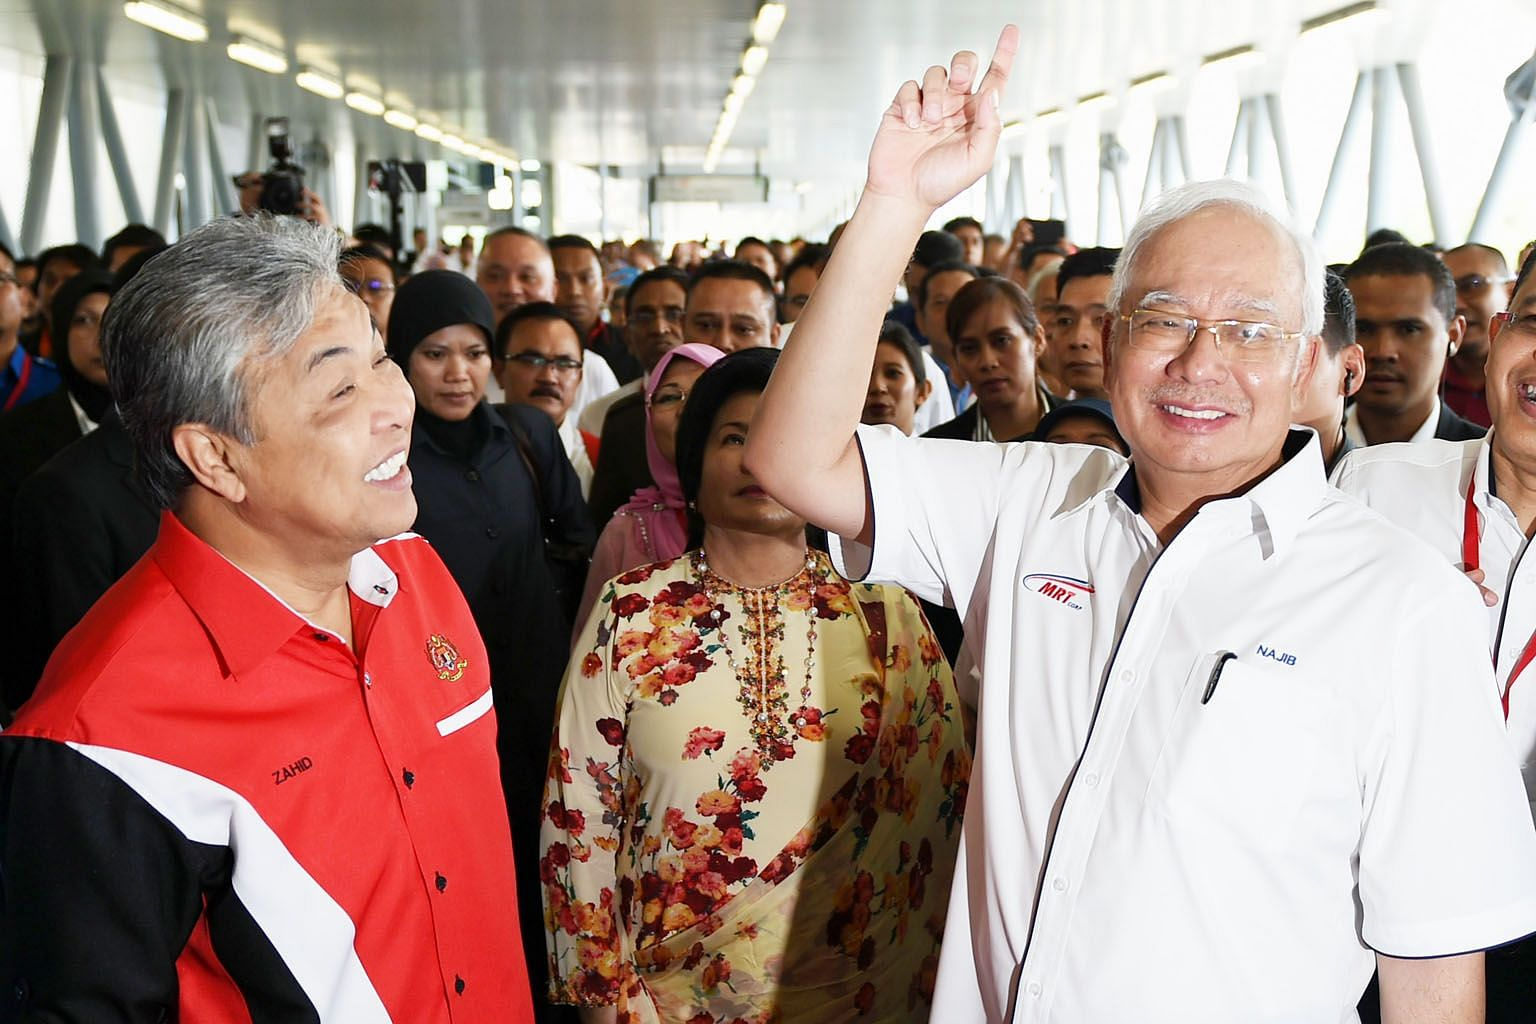 Malaysian Prime Minister Najib Razak (right) and DPM Ahmad Zahid Hamidi (left) at Kajang station last week for the launch of the MRT Sungai Buloh-Kajang line in Kuala Lumpur. The BN has been in power since independence in 1957, making it the longest-